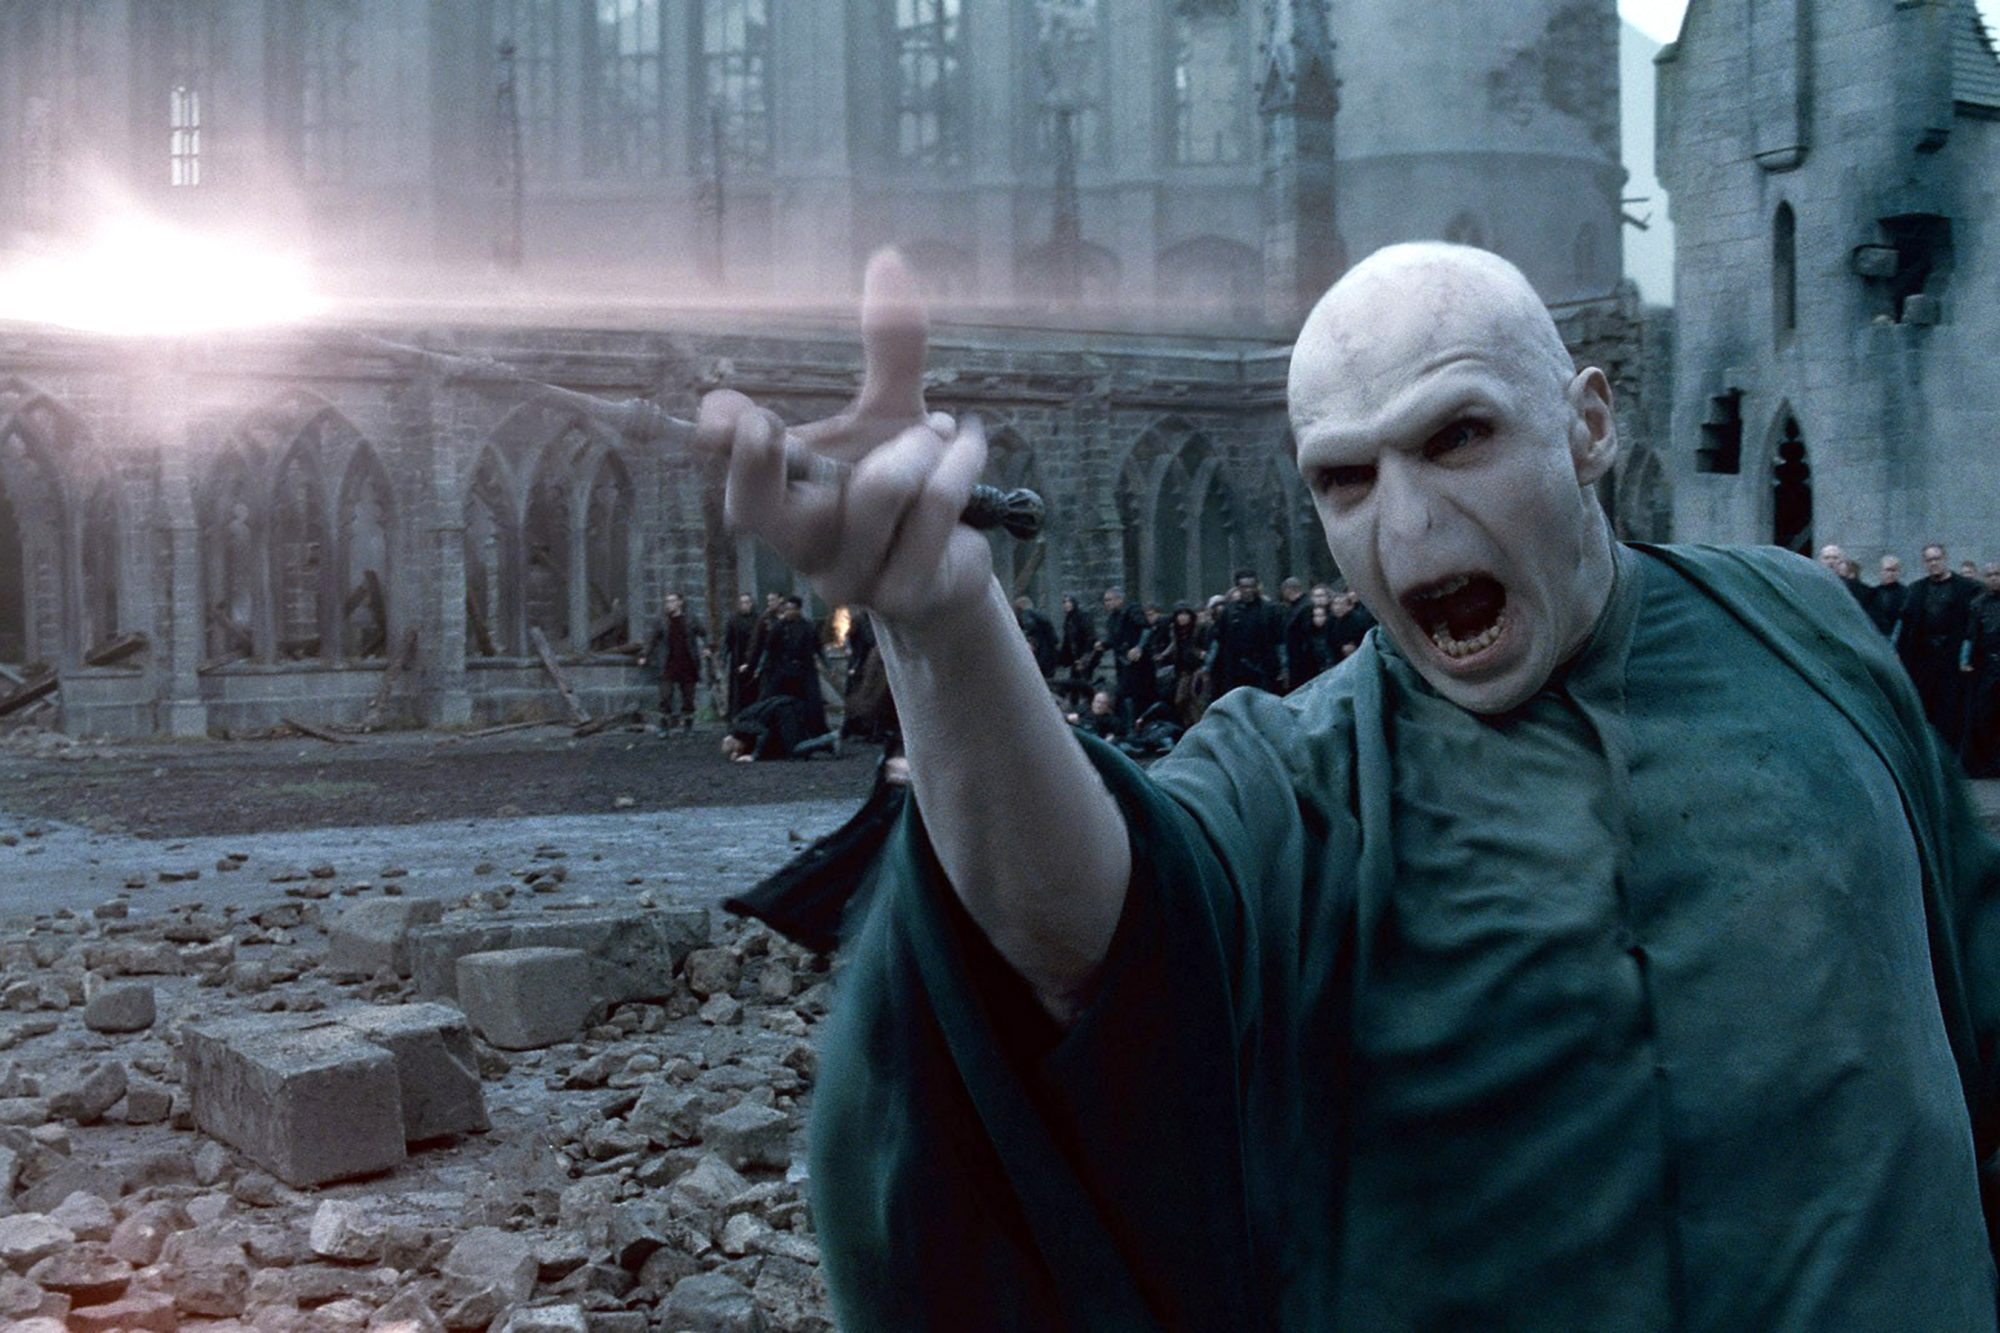 HARRY POTTER AND THE DEATHLY HALLOWS: PART 2, Ralph Fiennes, 2011. ©2011 Warner Bros. Ent. Harry Pot